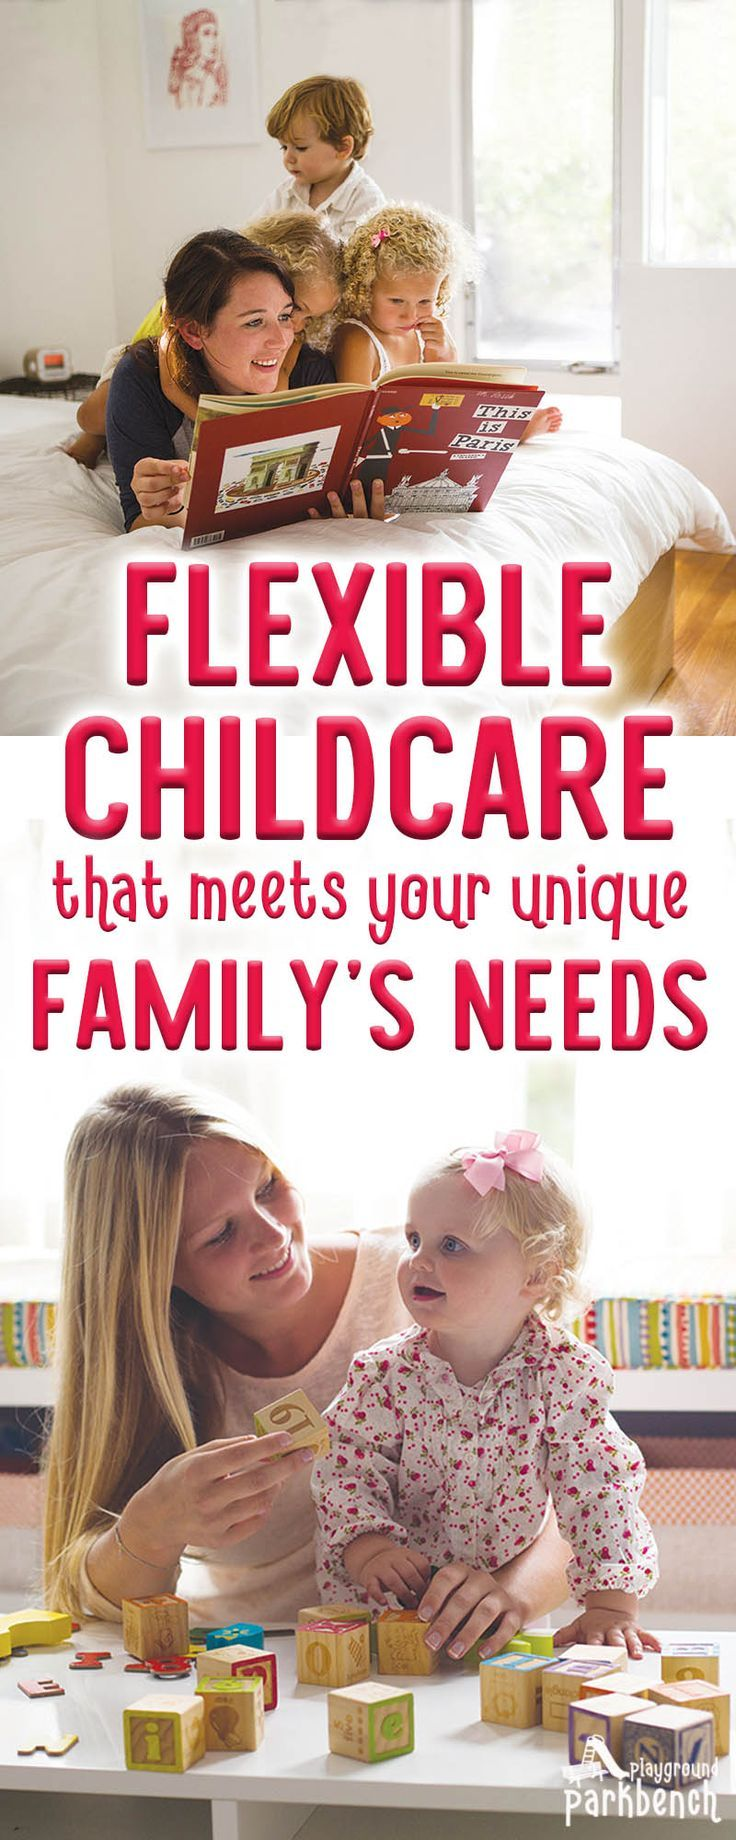 Are you currently evaluating childcare for your family? Looking for a flexible childcare option that meets your family's unique circumstances? Learn more about Au Pair Childcare - the flexible childcare option that may be the perfect fit for your family's needs #childcare #parenting  via @playgroundpb